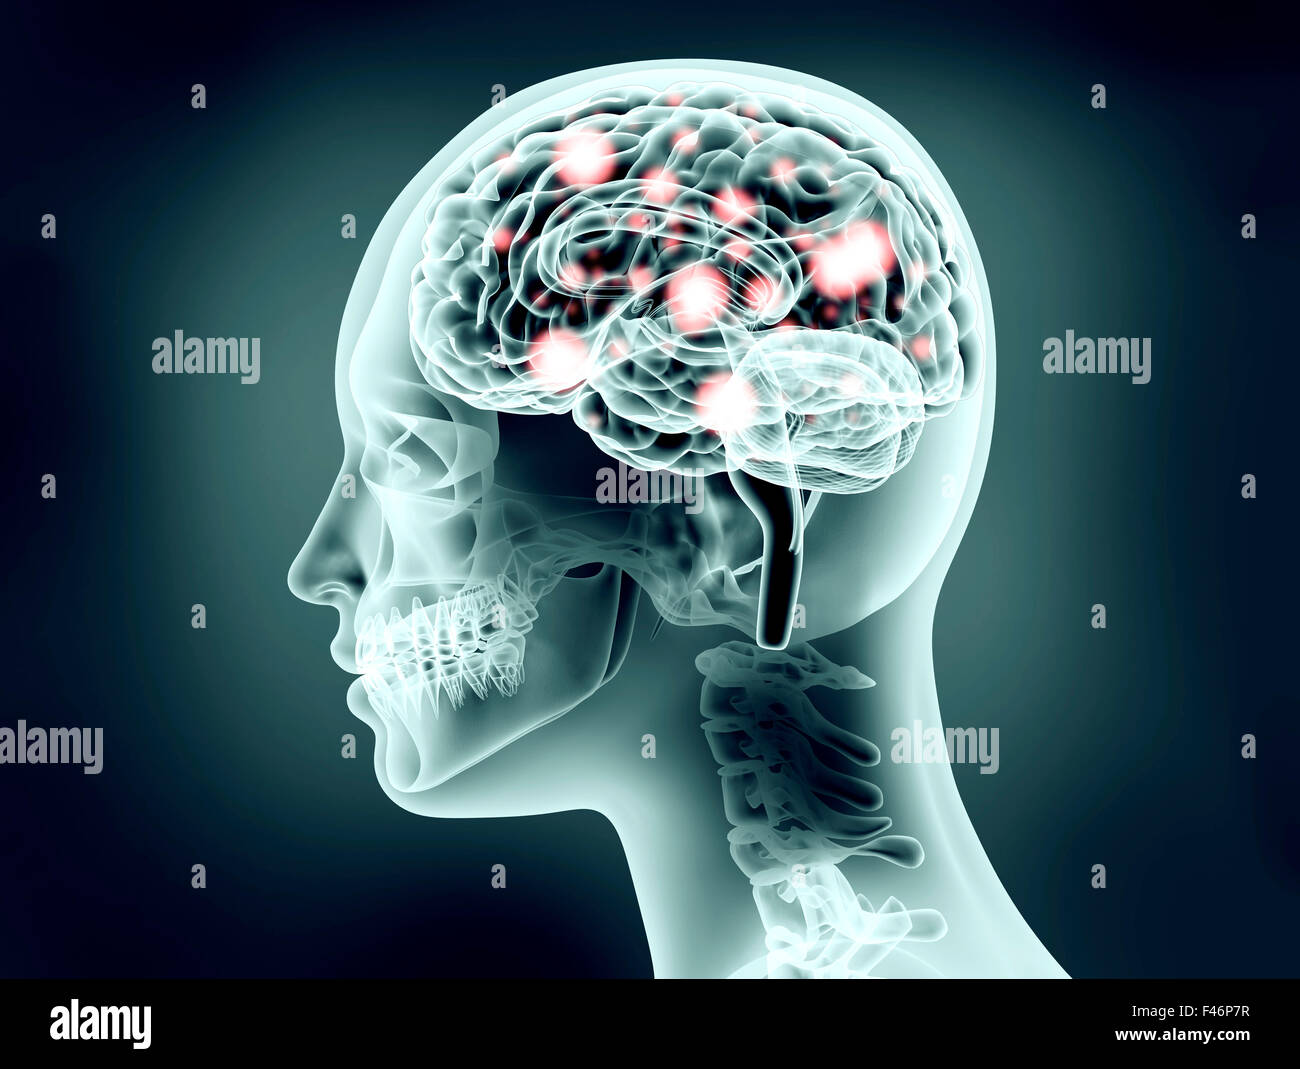 x-ray image of human head with brain and electric pulses Stock Photo